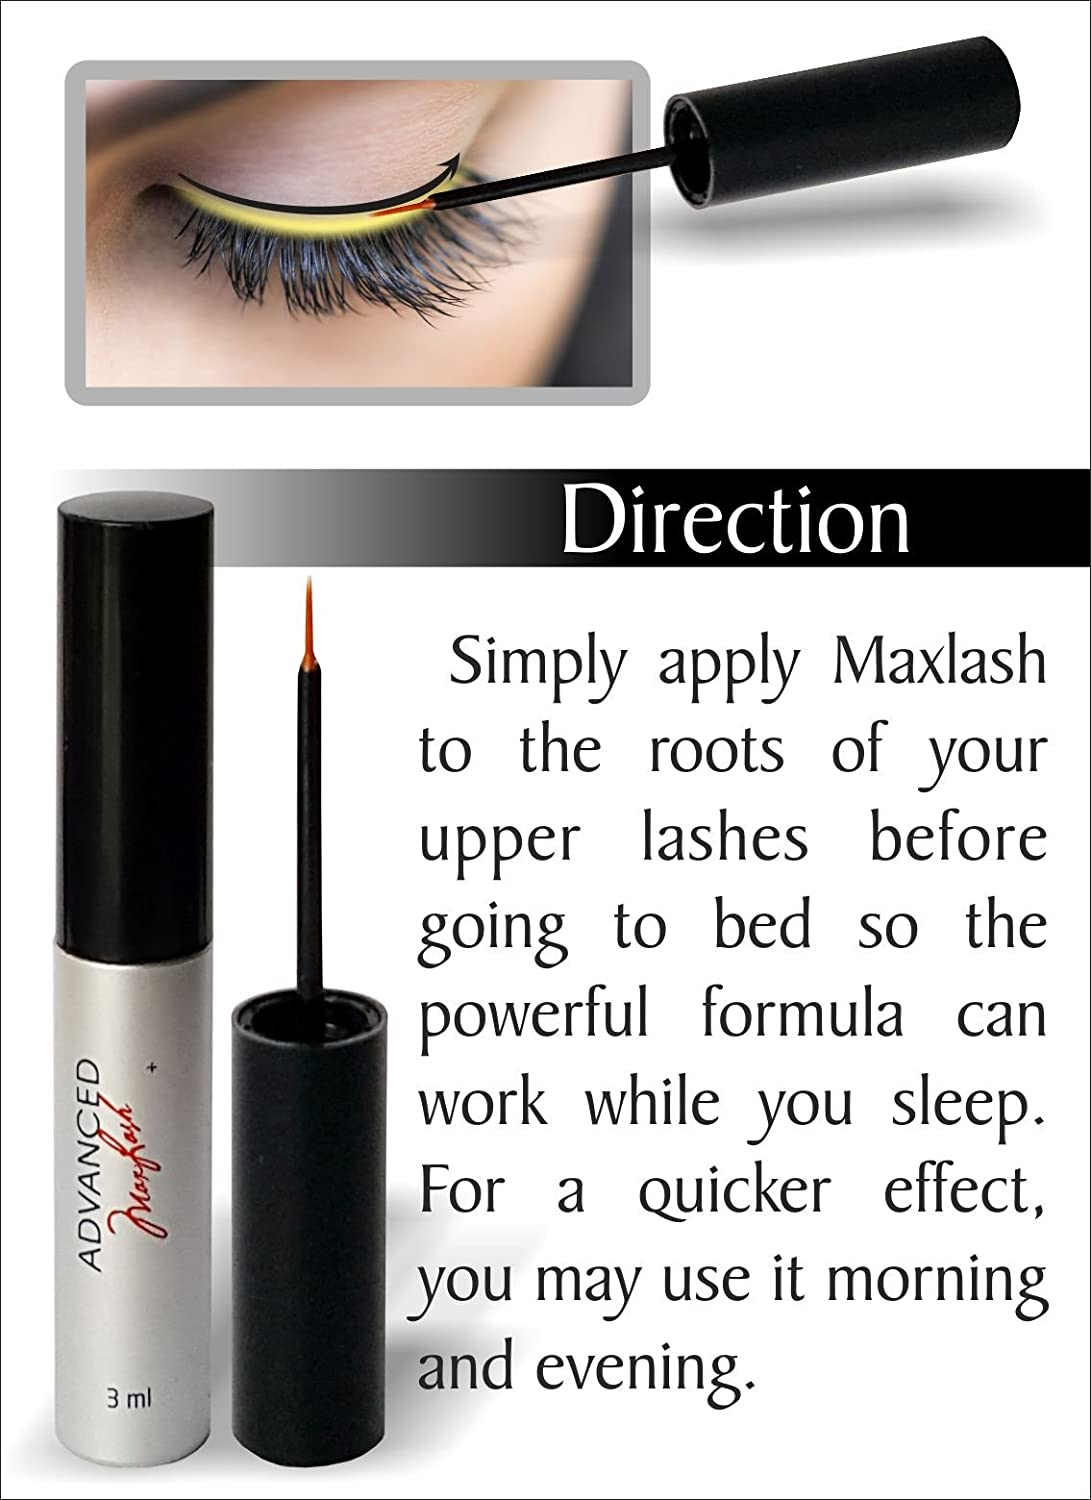 9b702e4cb3f MAXLASH Natural Eyelash Growth Serum 3ml - WORKS OR YOUR MONEY BACK .Grows  Longer, Fuller, Thicker Eyelashes in one Month.: Amazon.co.uk: Beauty